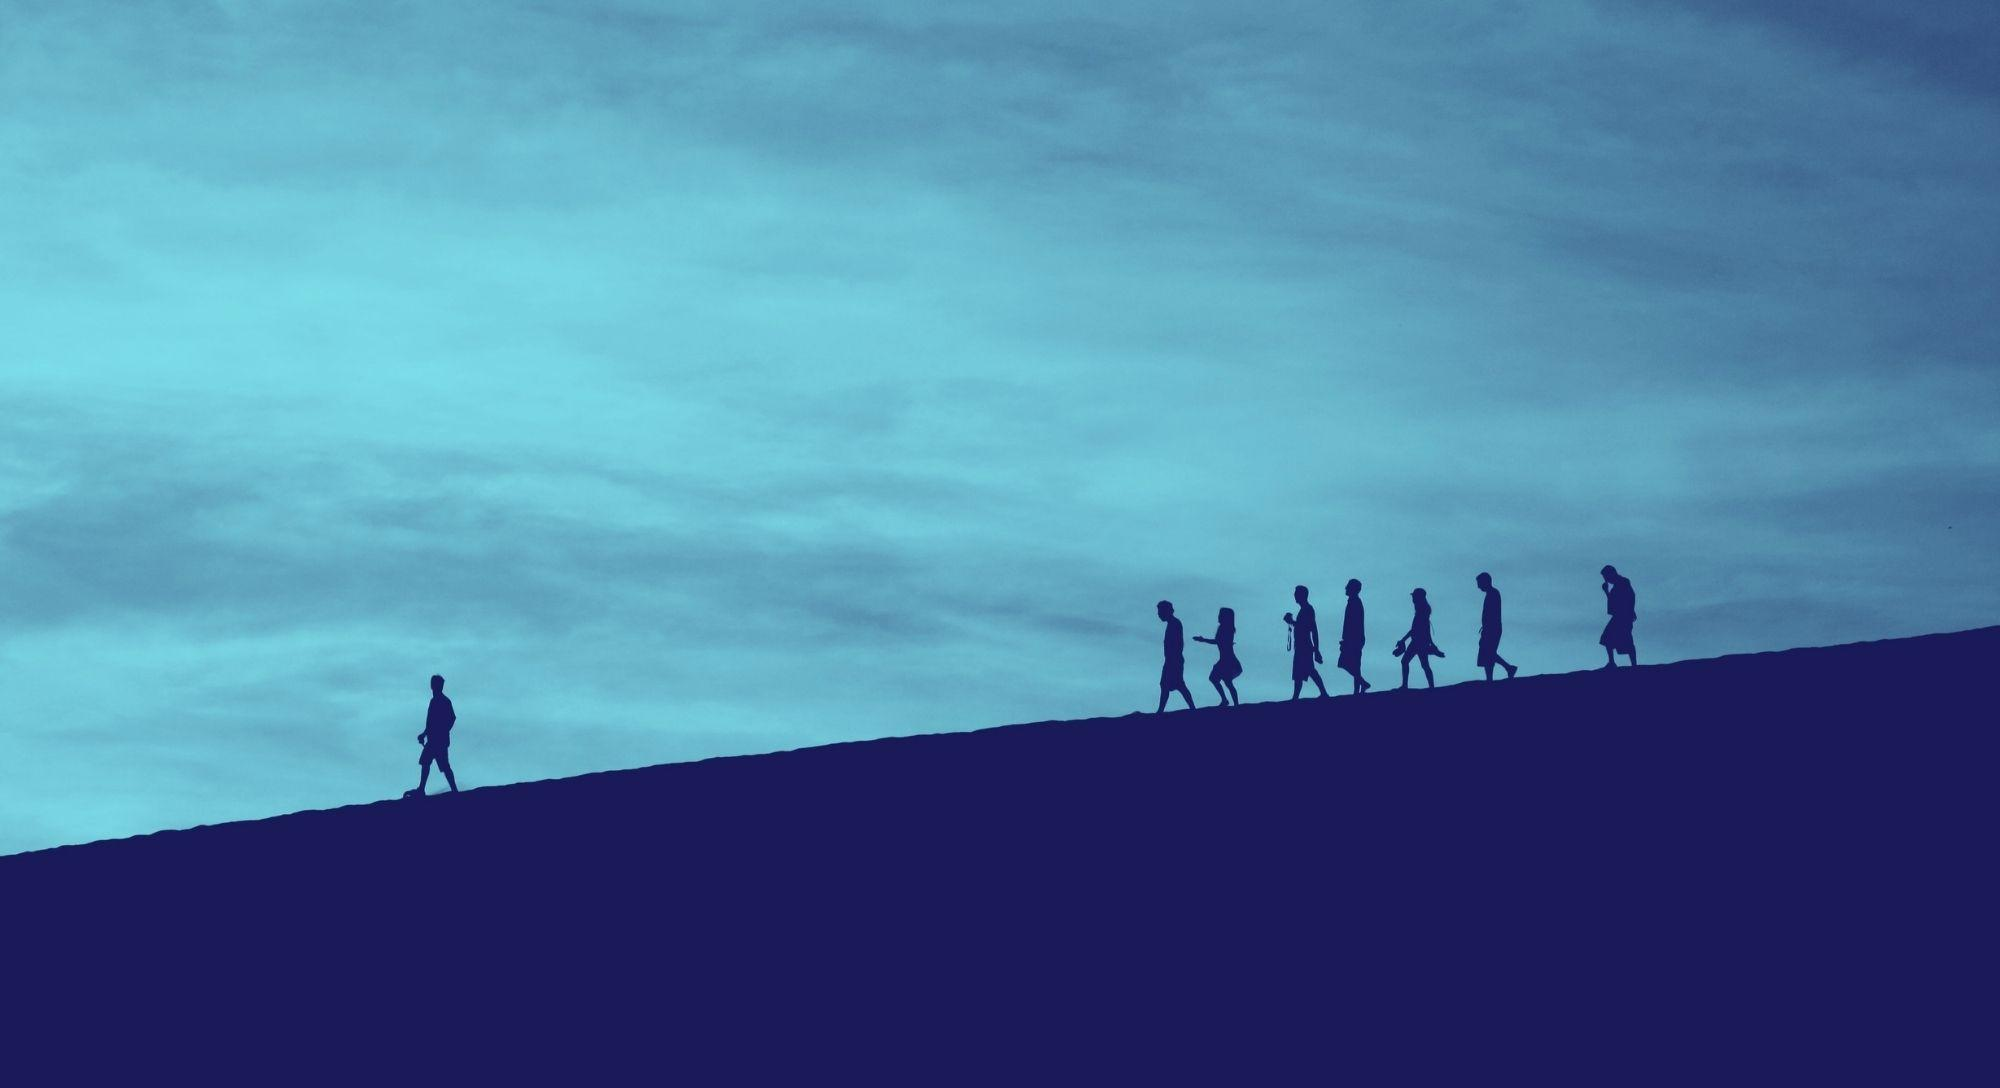 Authentic leadership: Definition, examples and how to develop it